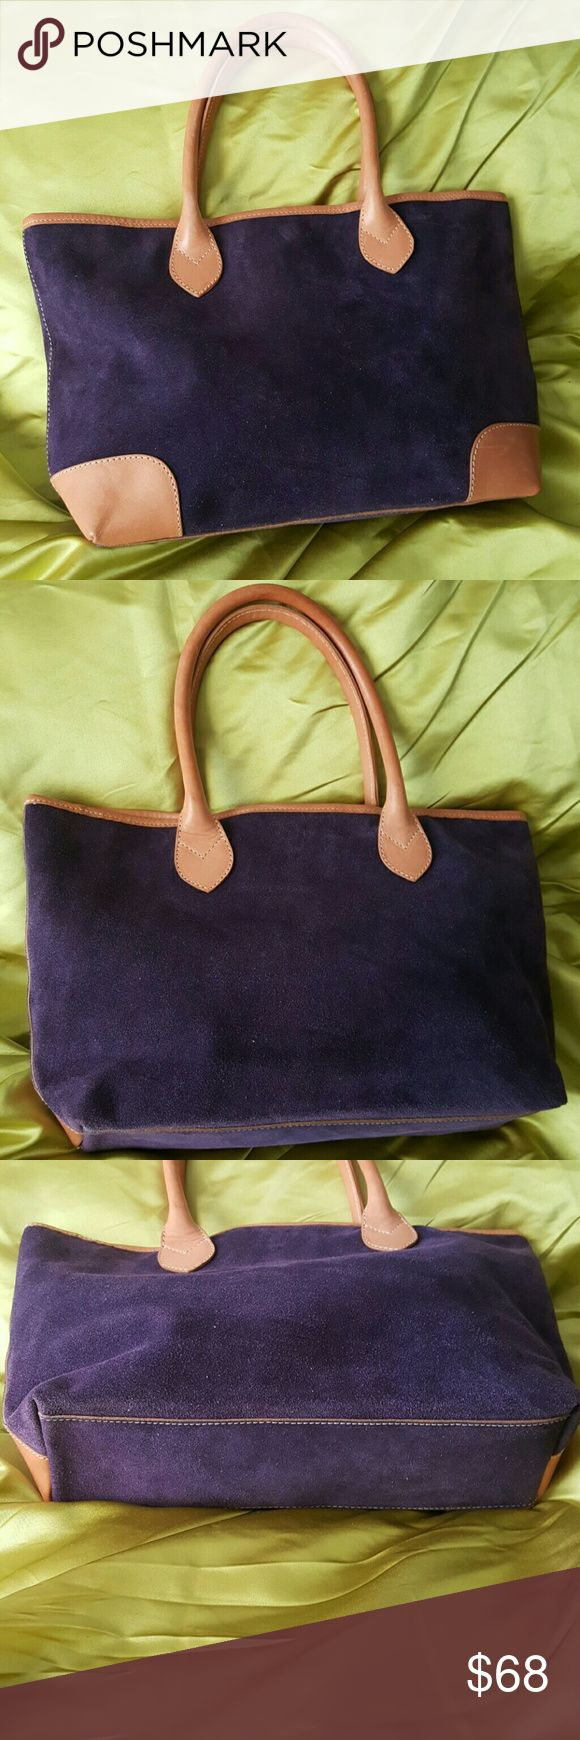 Suede Italian Handbag Soft purple suede exterior with fine Italian  tan leather detail. The interior is very clean. Made in Italy. Bags Totes